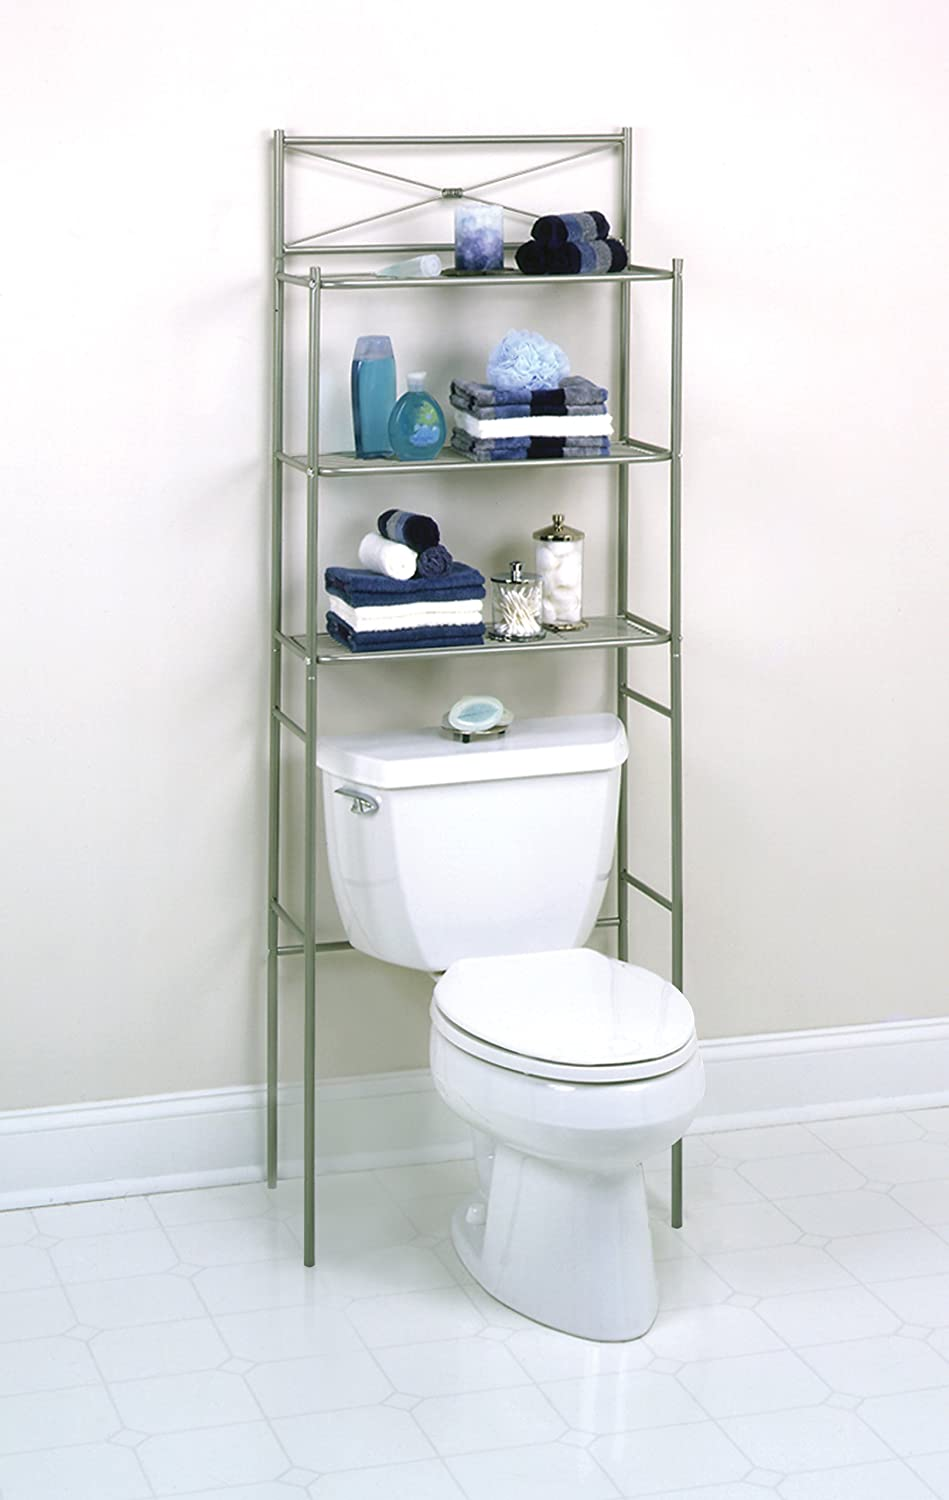 Zenith Bathstyles Spacesaver Bathroom Storage Over the ...